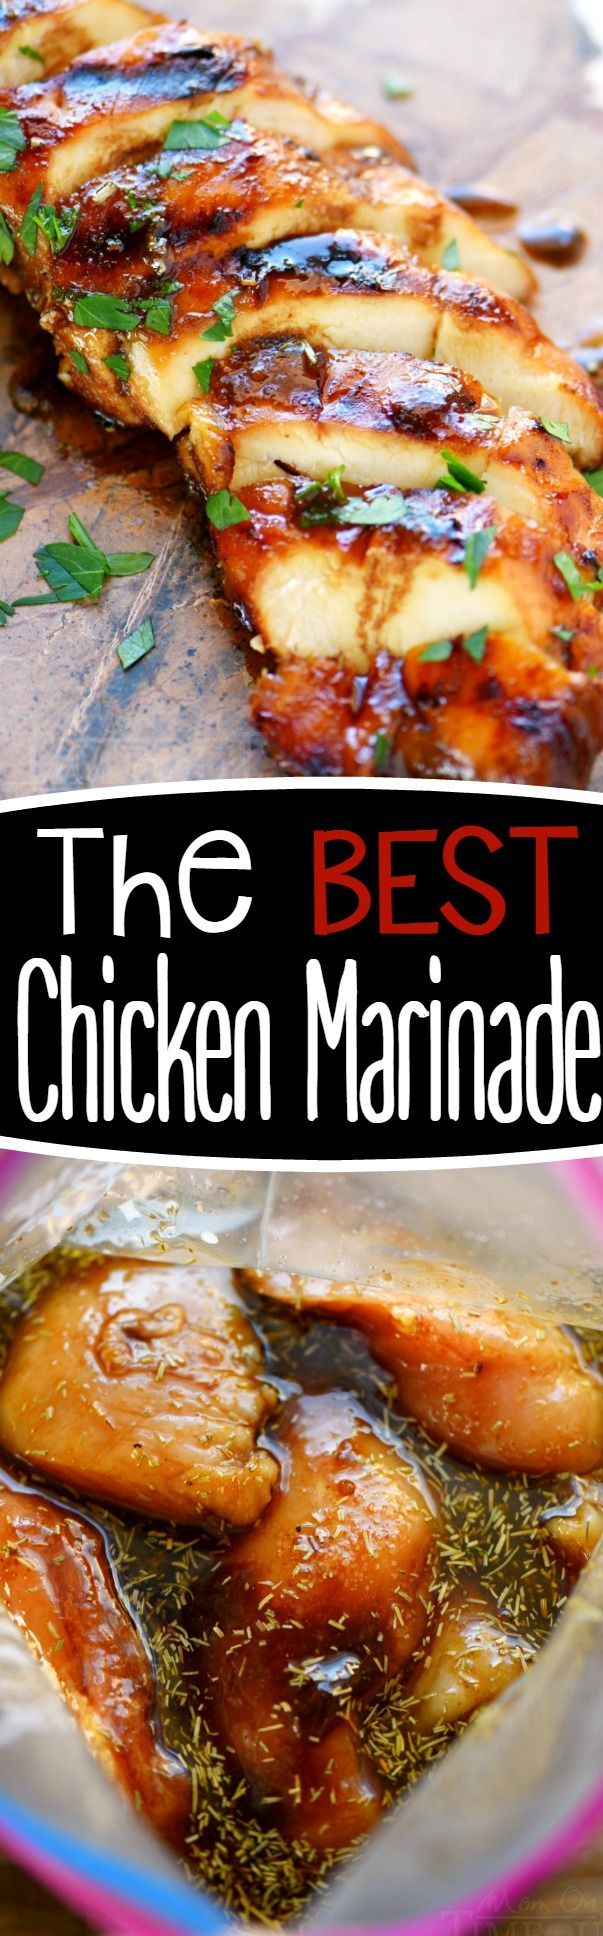 Look no further for the Best Chicken Marinade recipe ever! This easy chicken marinade recipe is going to quickly become your